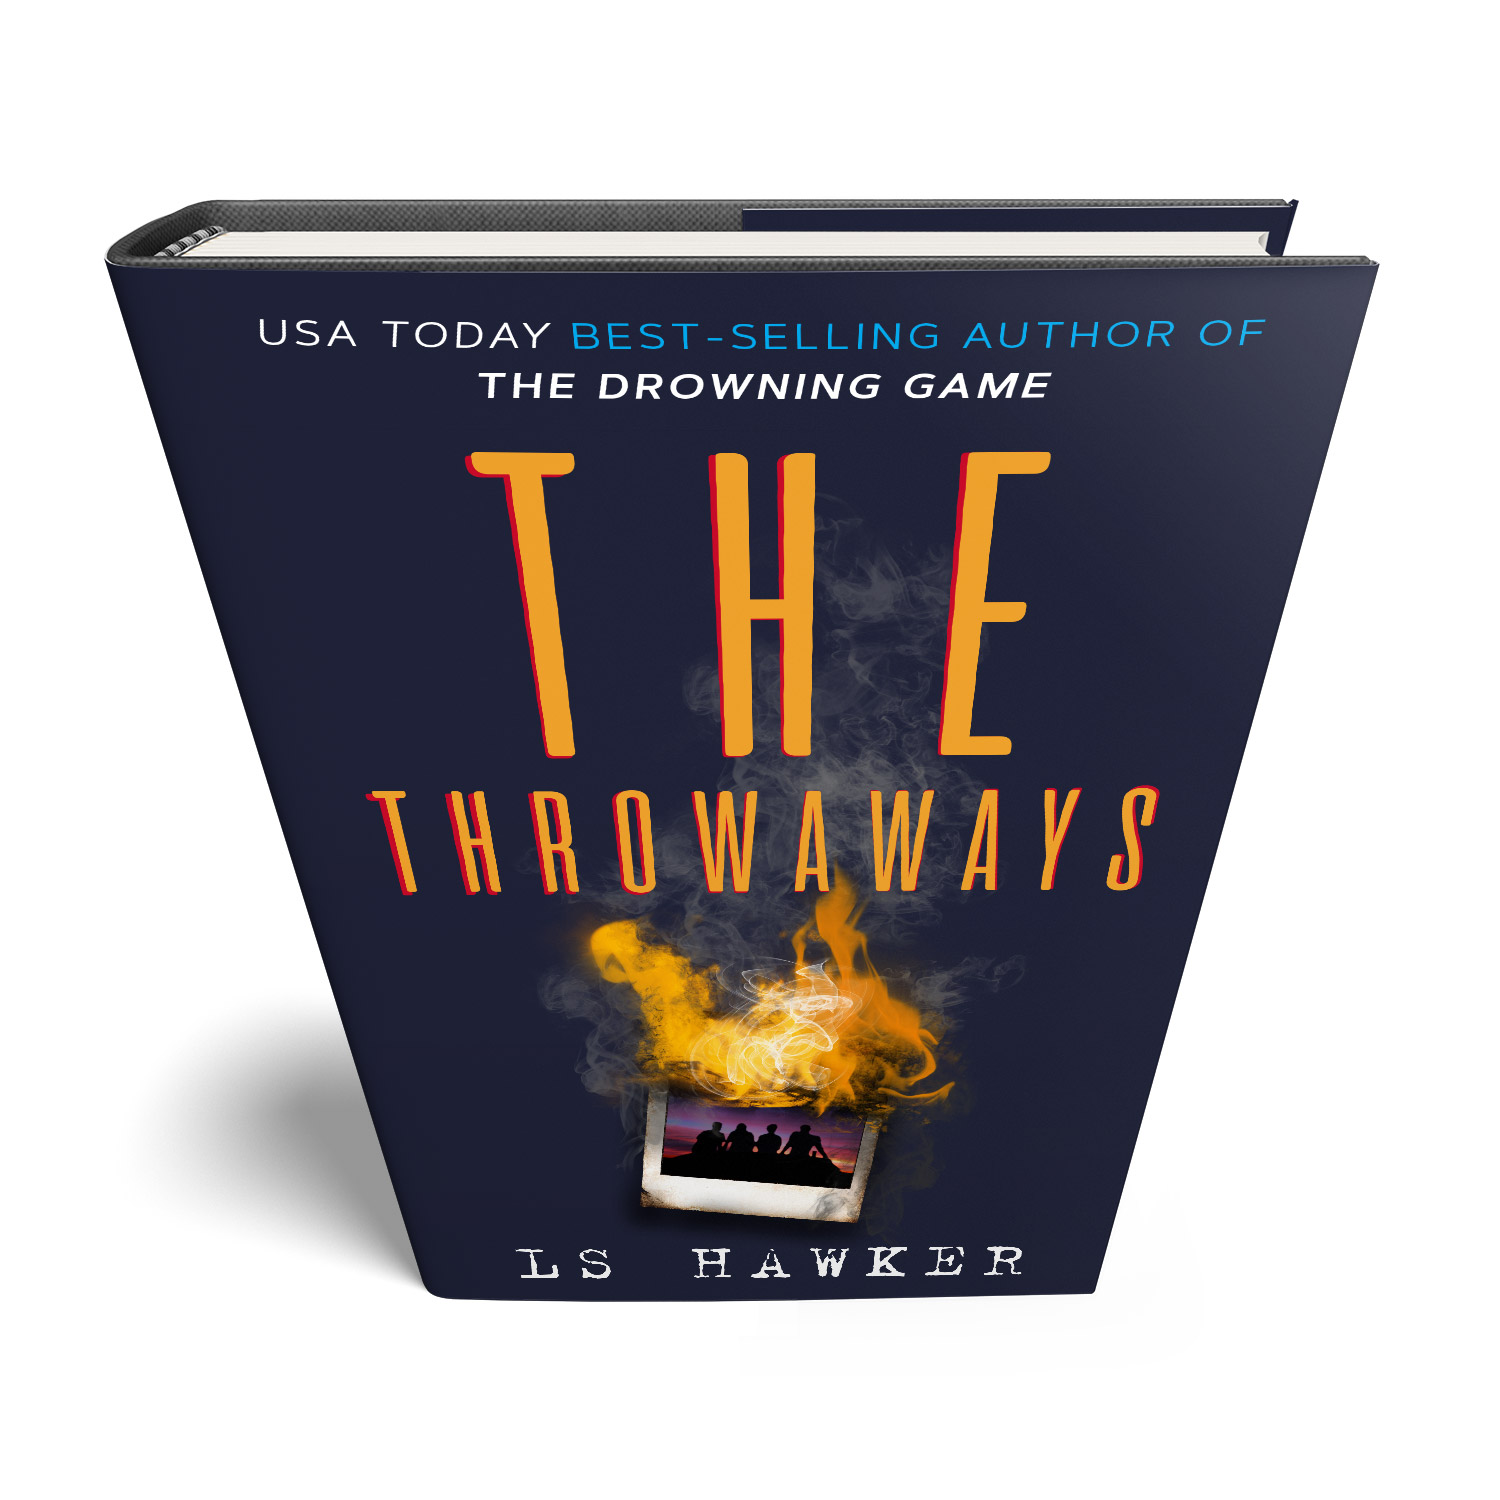 'The Throwaways' is a breakneck, 80s-set conspiracy thriller. The author is LS Hawker. The book cover and interior design are by Mark Thomas. To learn more about what Mark could do for your book, please visit coverness.com.